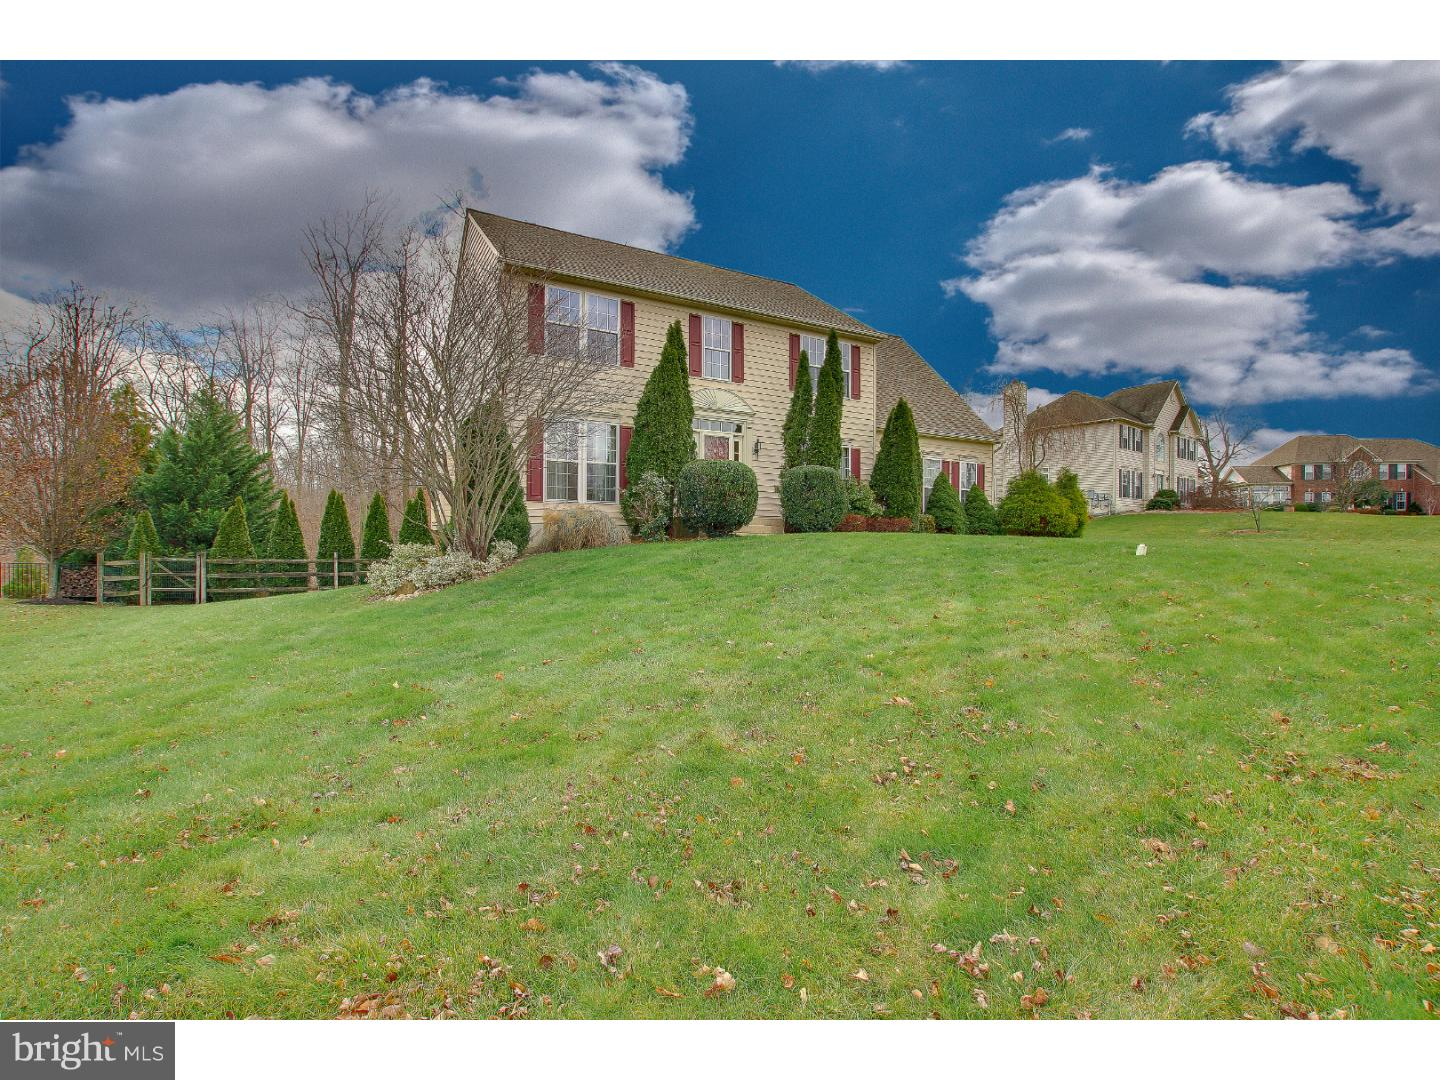 3358 GRIGGS DRIVE, GARNET VALLEY, PA 19061